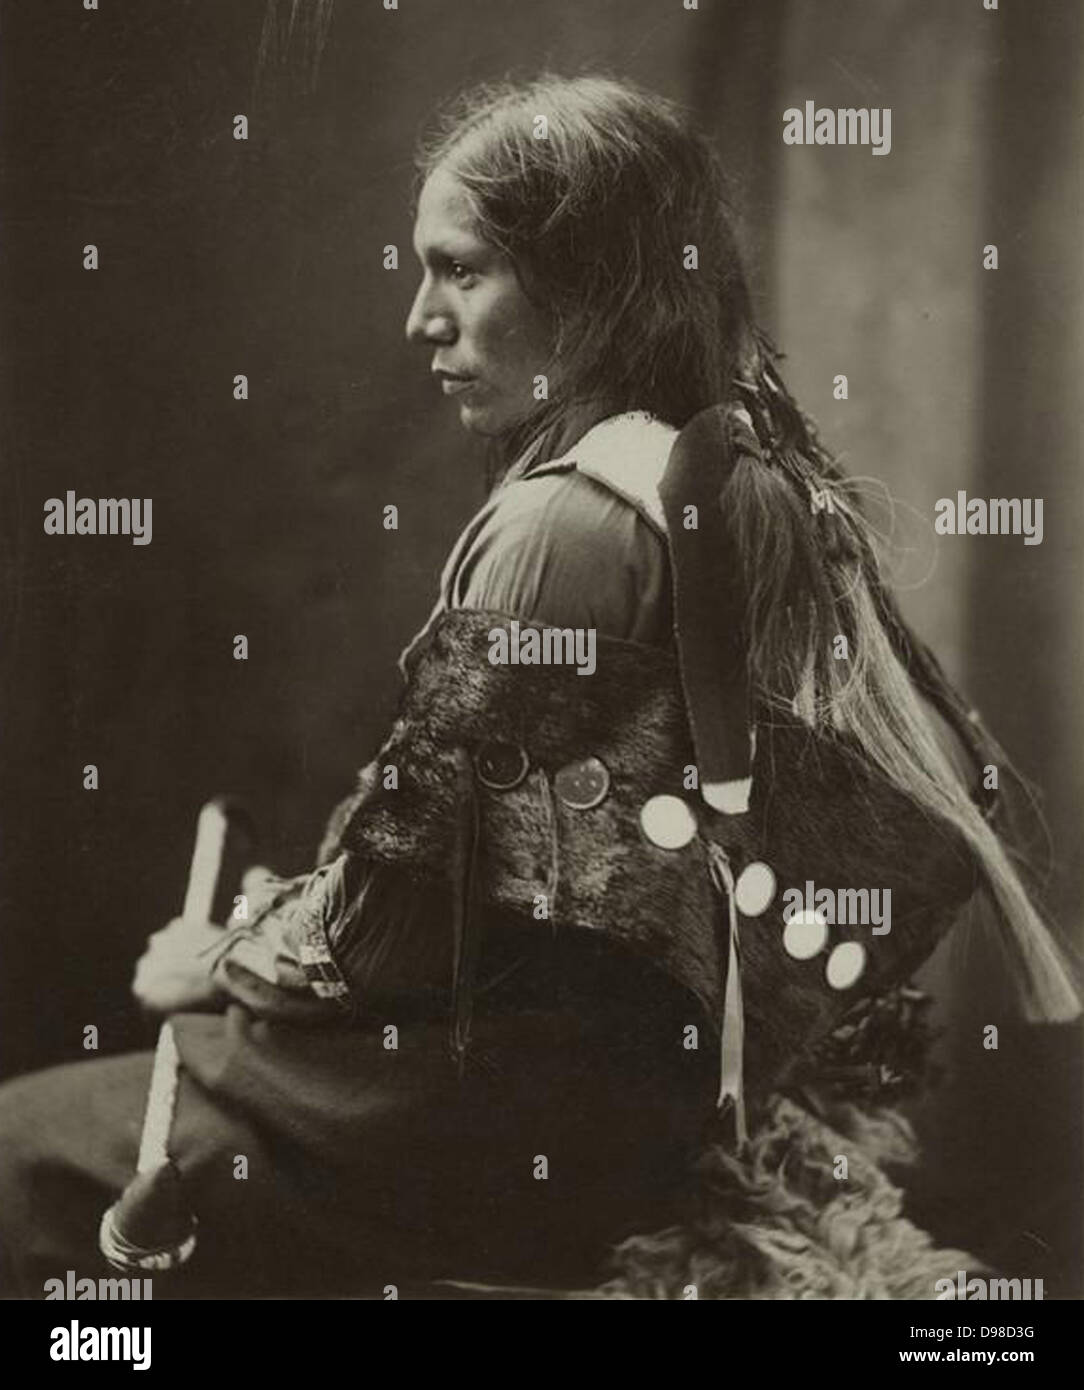 Sioux Native American Indian man, 1890. - Stock Image